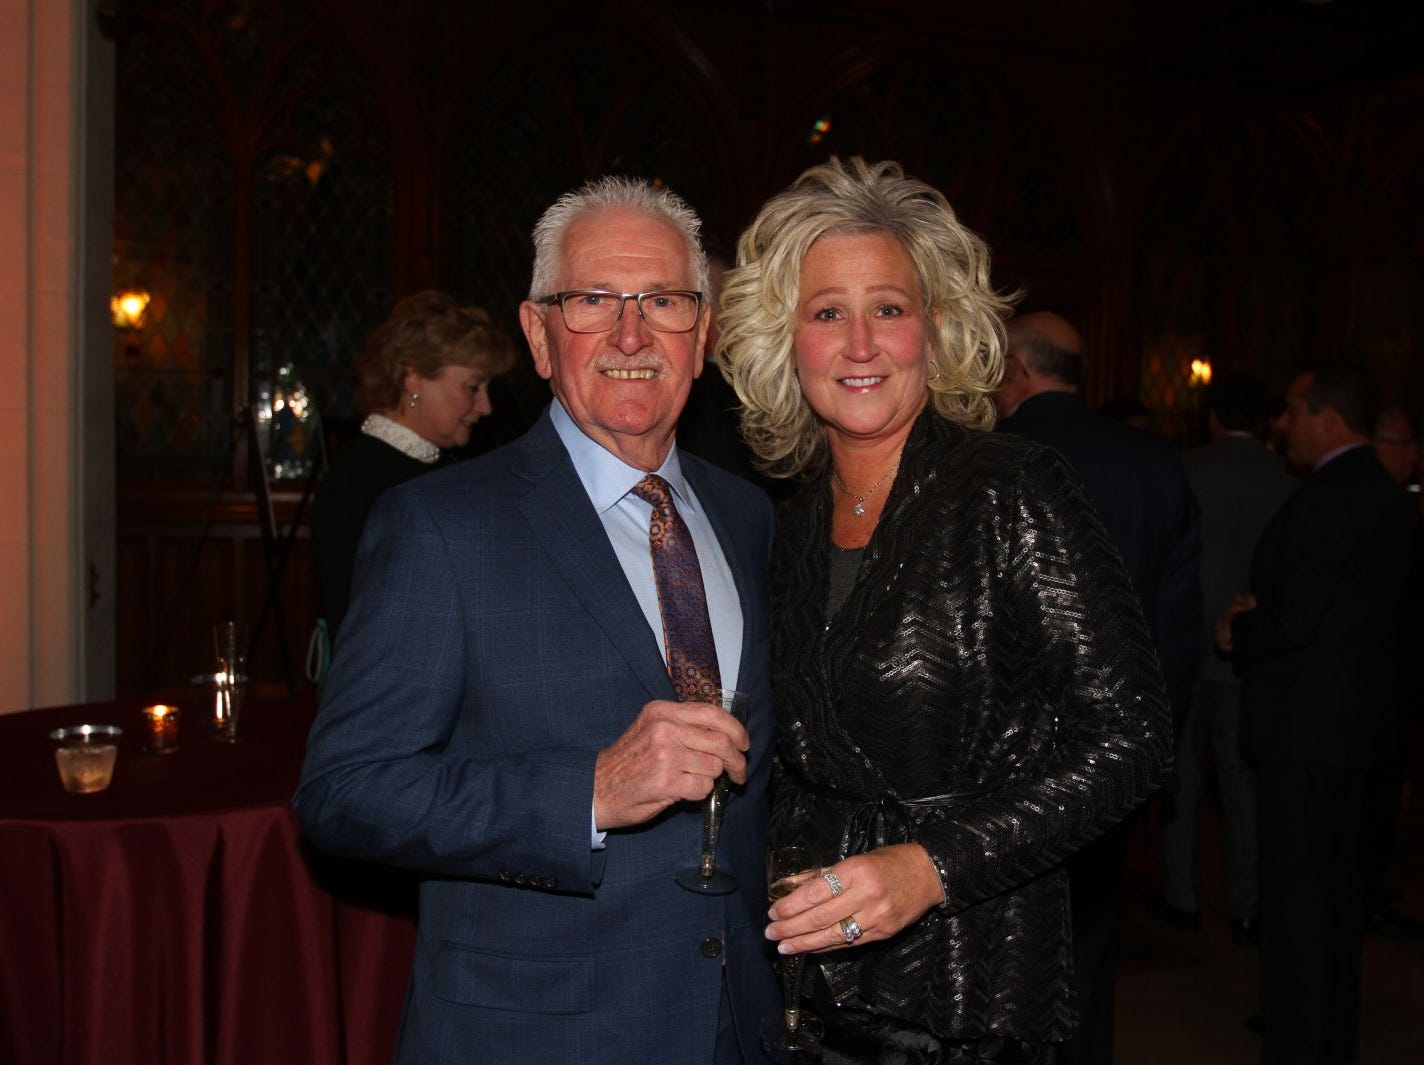 Bob and Dawn Greenway. Wyckoff Family YMCA hosted its 75th anniversary gala to celebrate its benefactors, held at the Rio Vista seminary in Mahwah. 11/16/2018